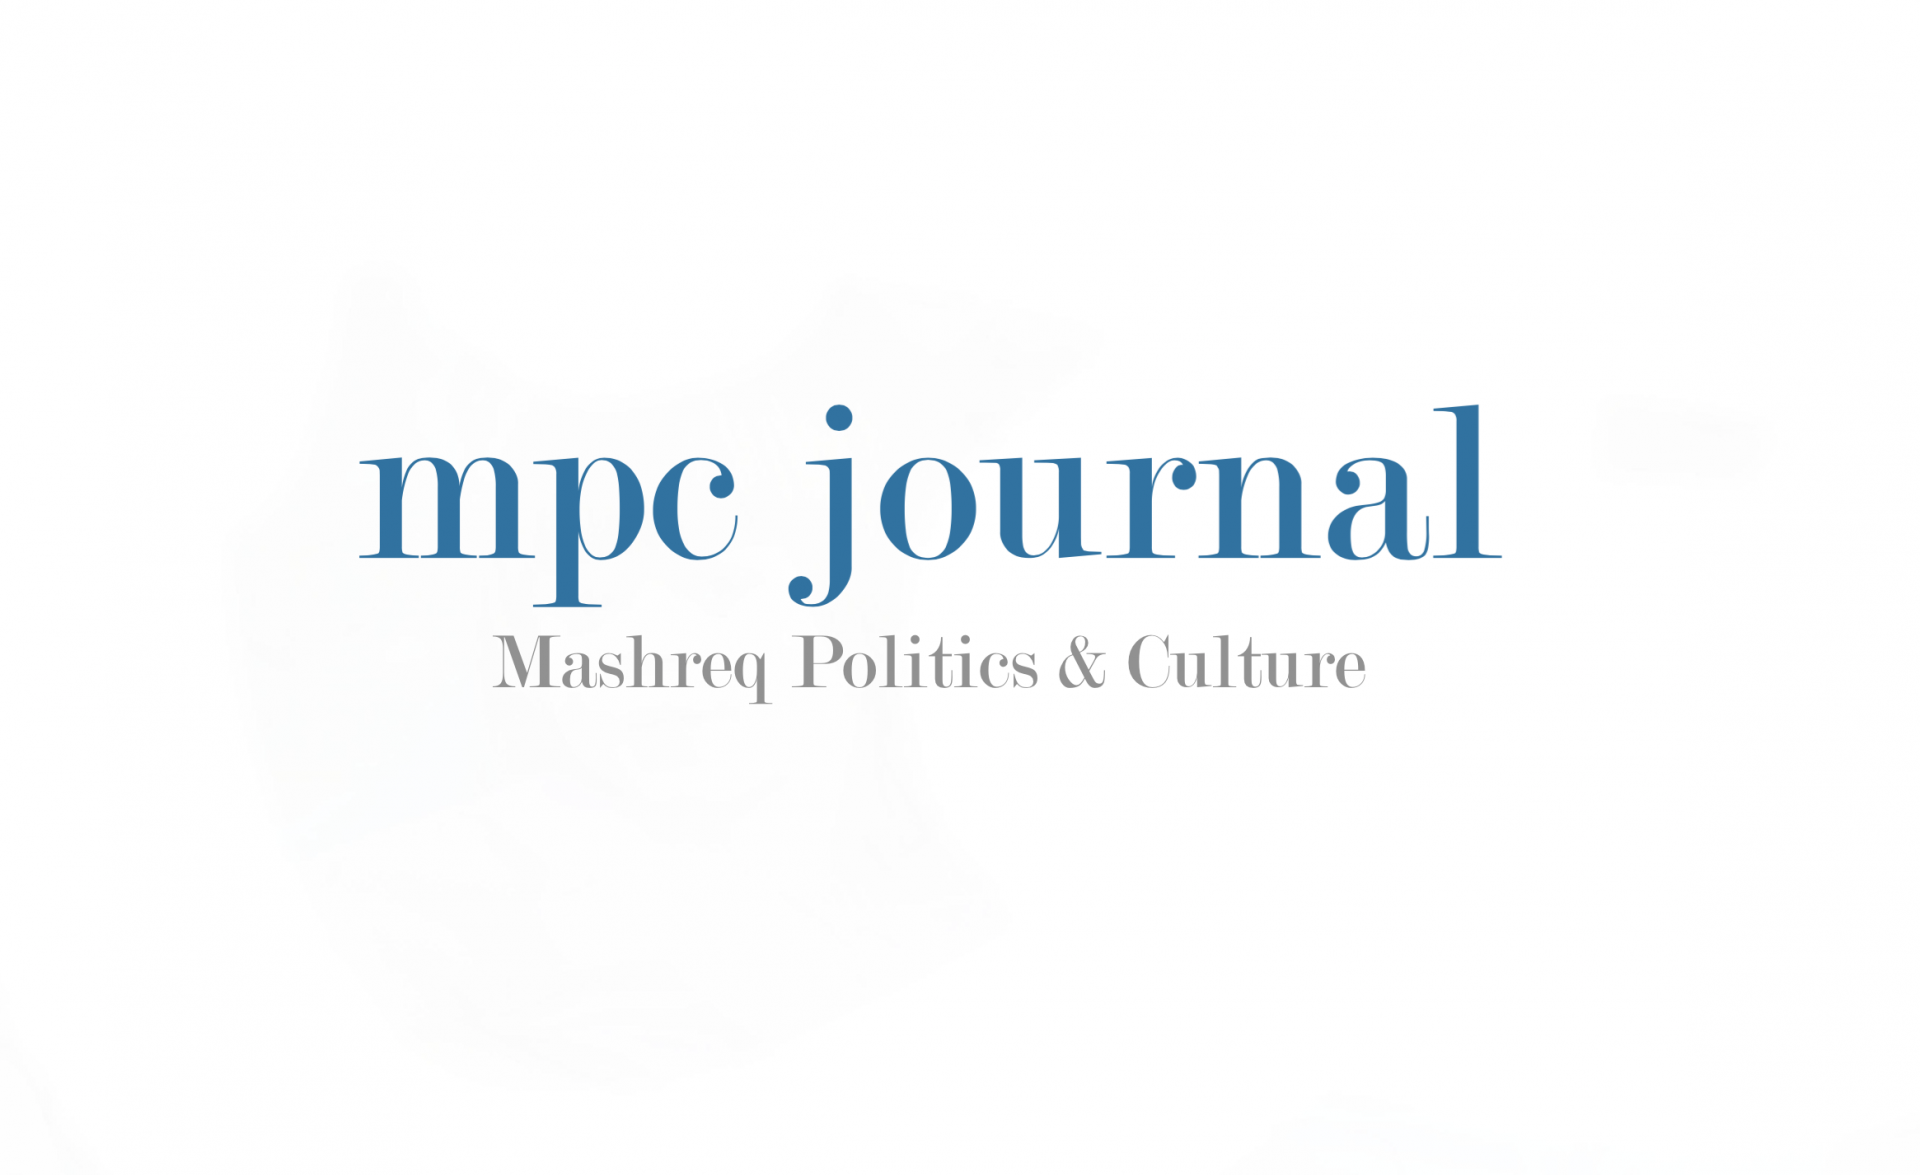 Submissions  - submit an article to the MPC Journal. Hakim Khatib - Mashreq Politics and Culture Journal - MPC Journal - © Hakim Khatib